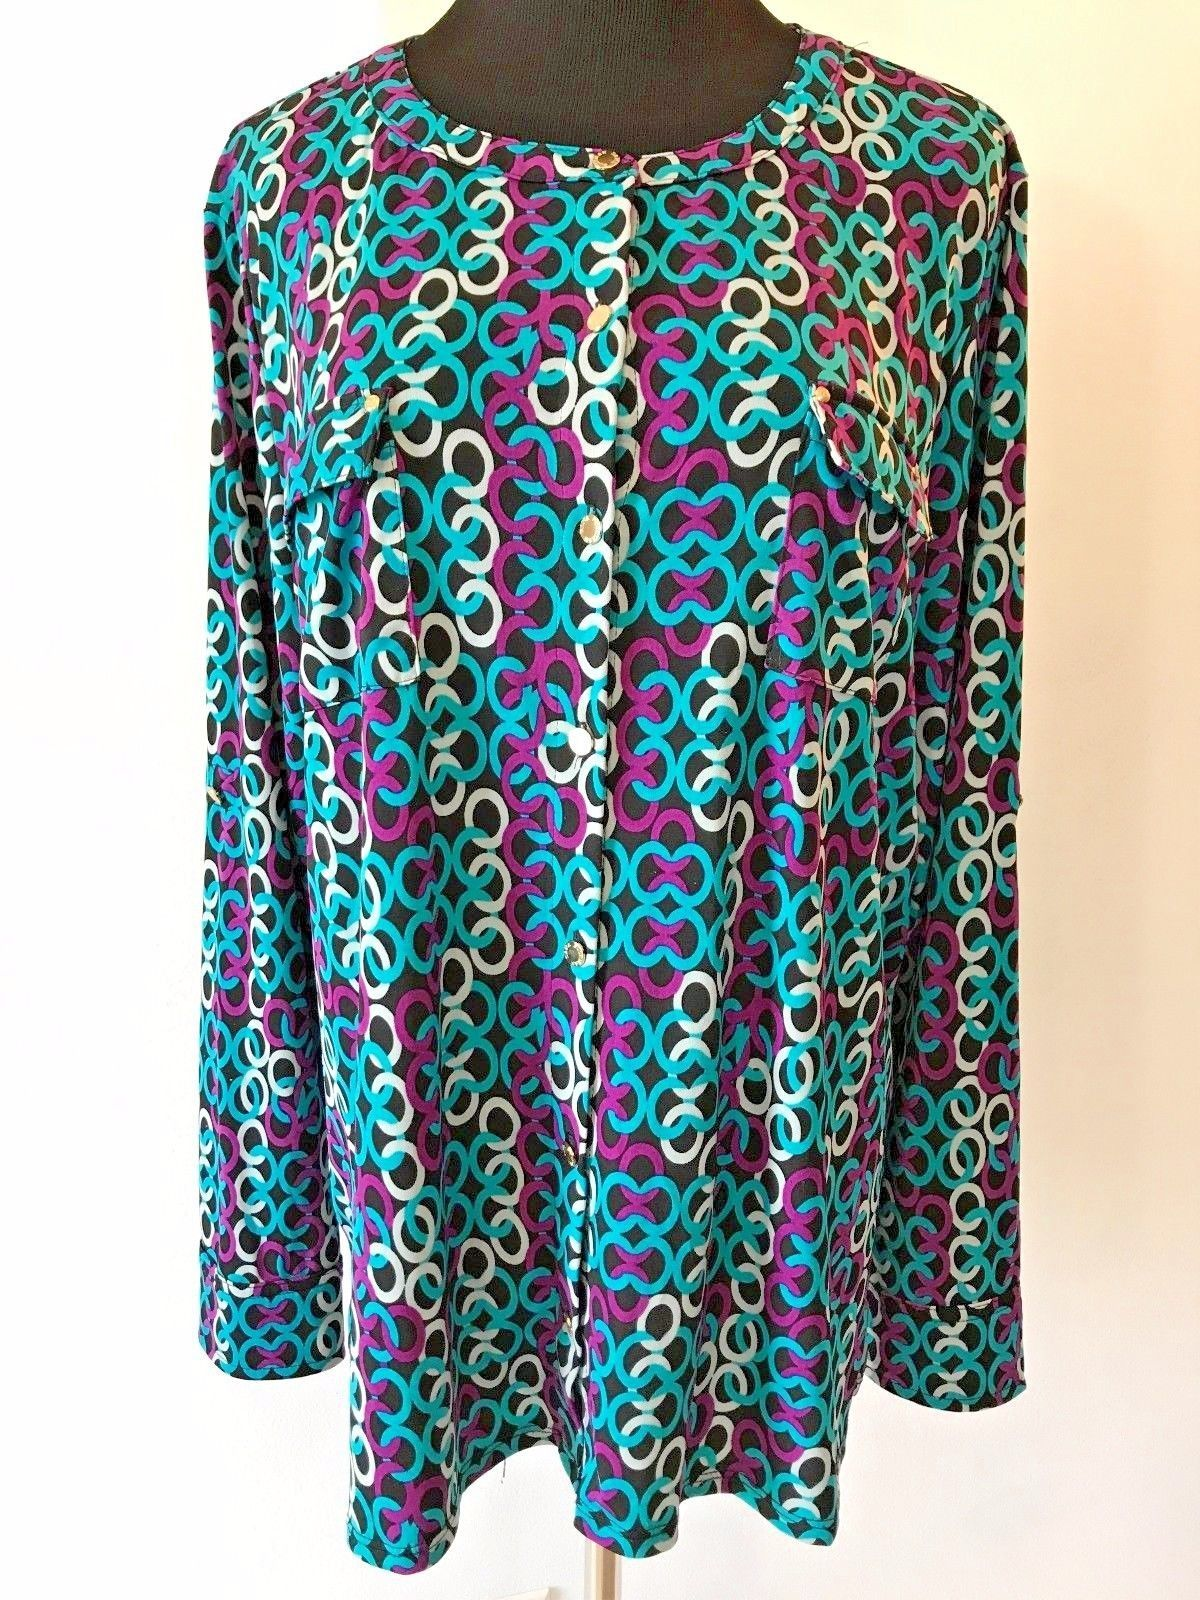 5c69e4d2f8a8c7 Dana Buchman Black Turquoise Purple Geometric Rings Blouse Shirt Top size  1X S1 -  17.95